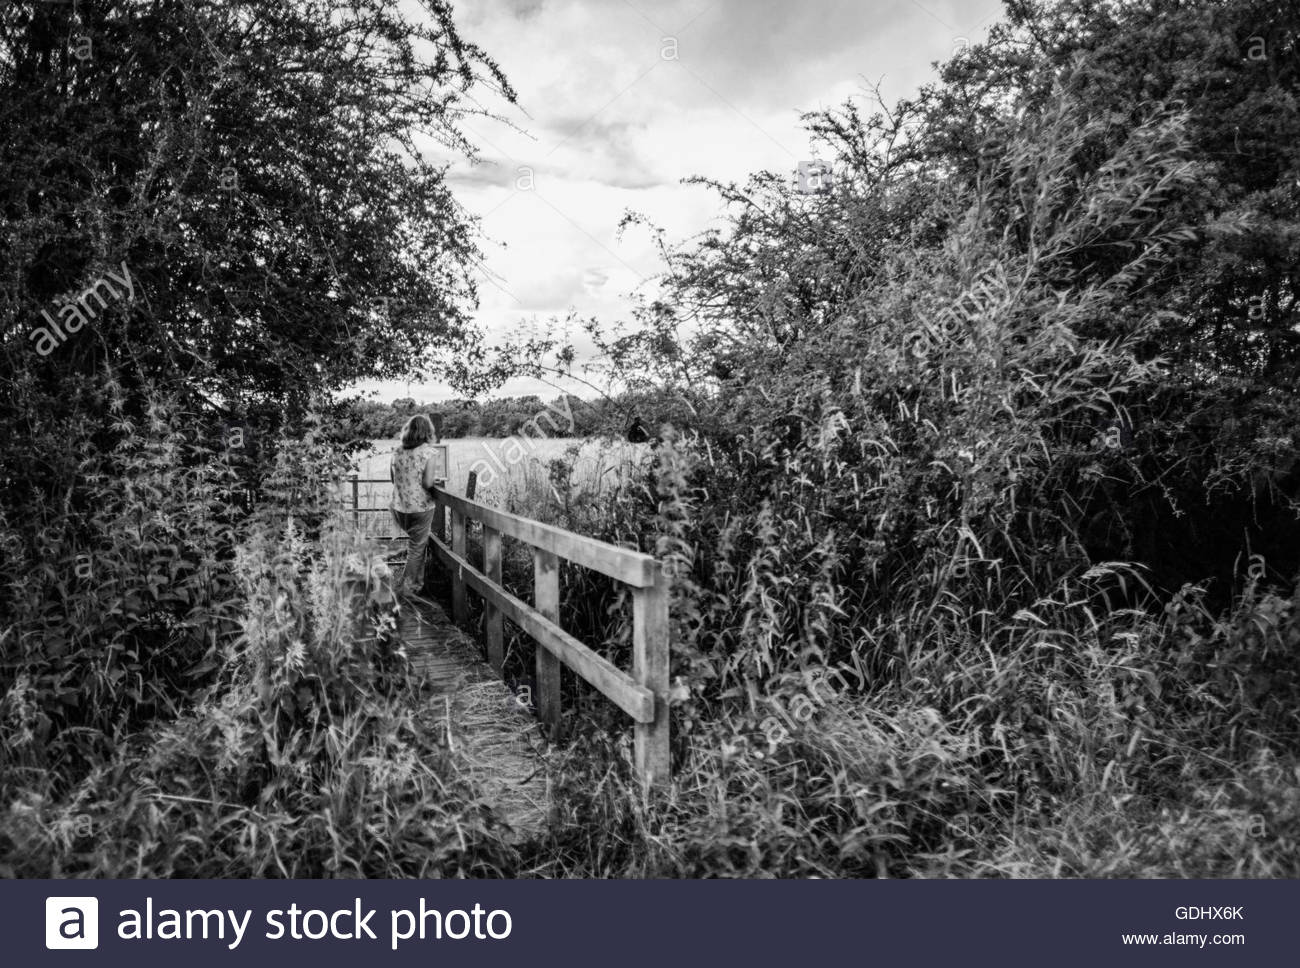 Woman seen crossing a wooden bridge by way of a field of corn. - Stock Image